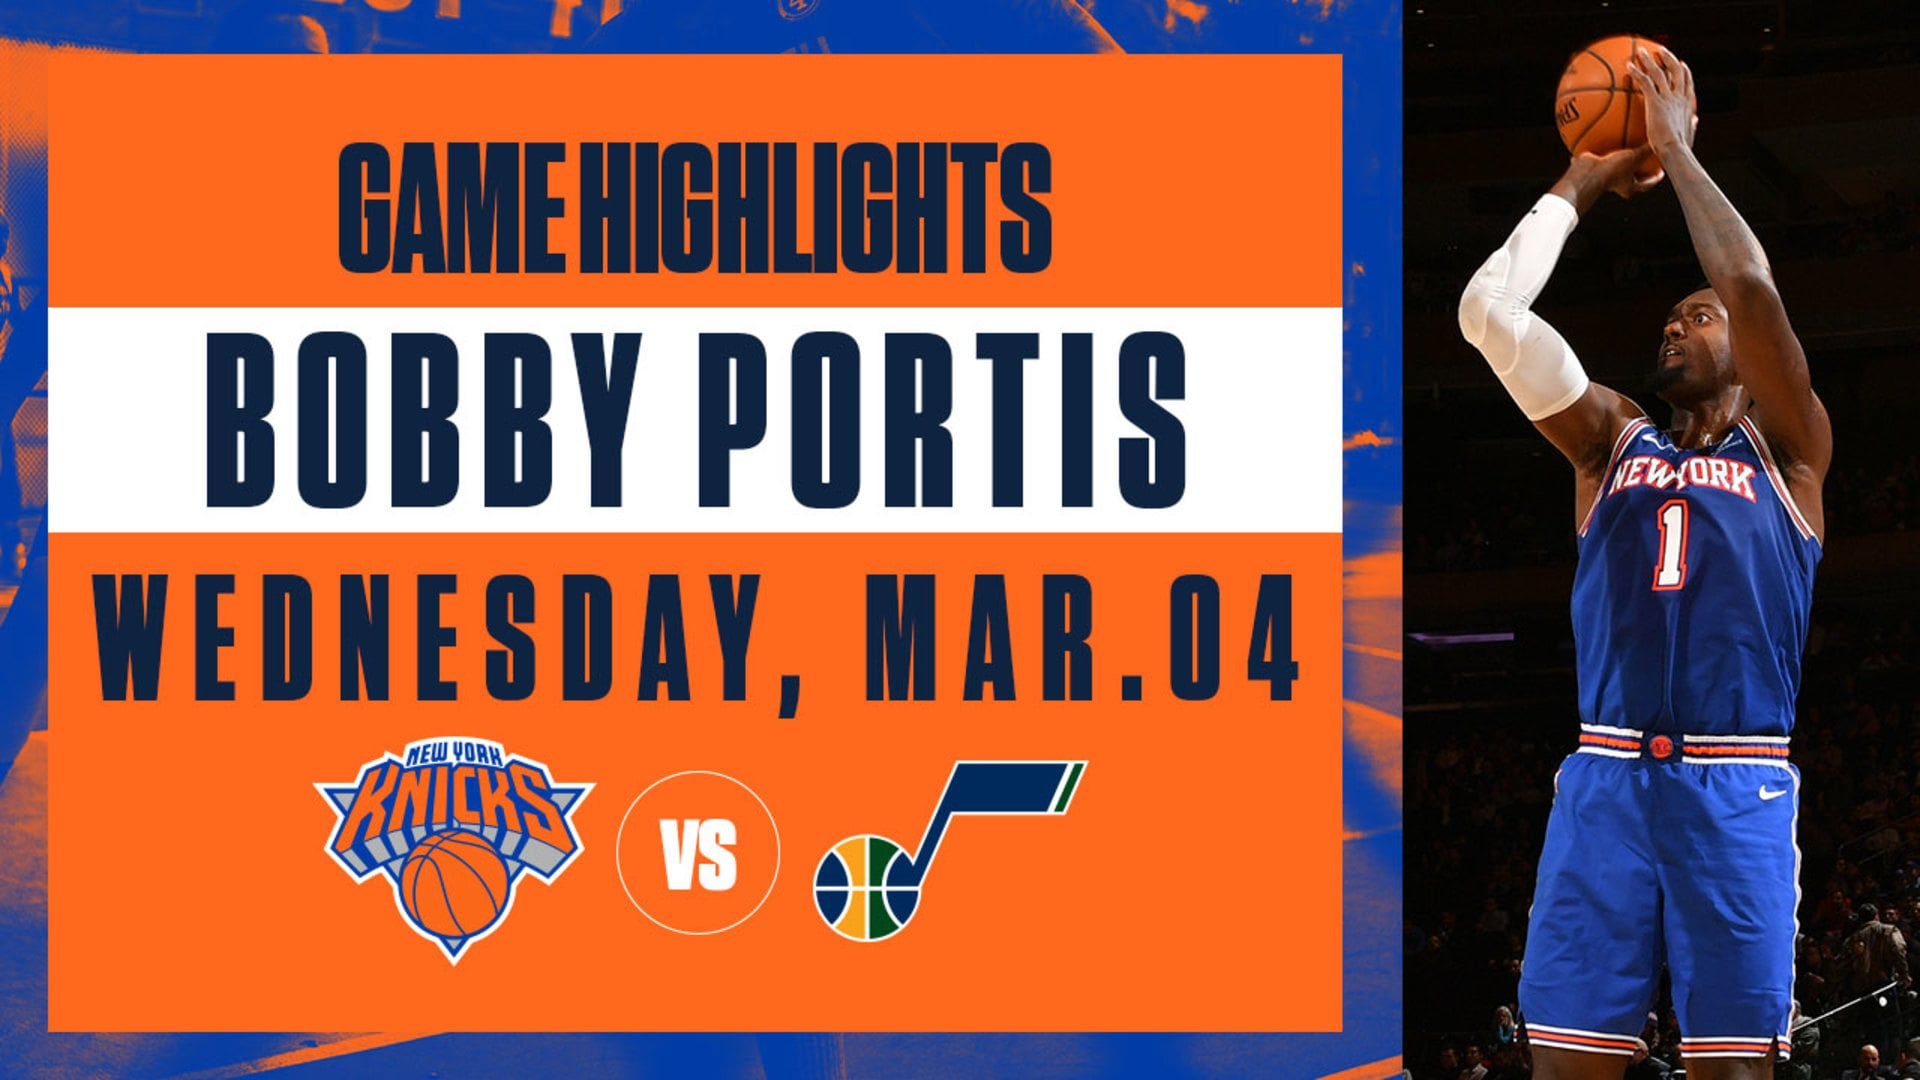 Highlights: Bobby Portis (21 Points) | Knicks vs. Jazz